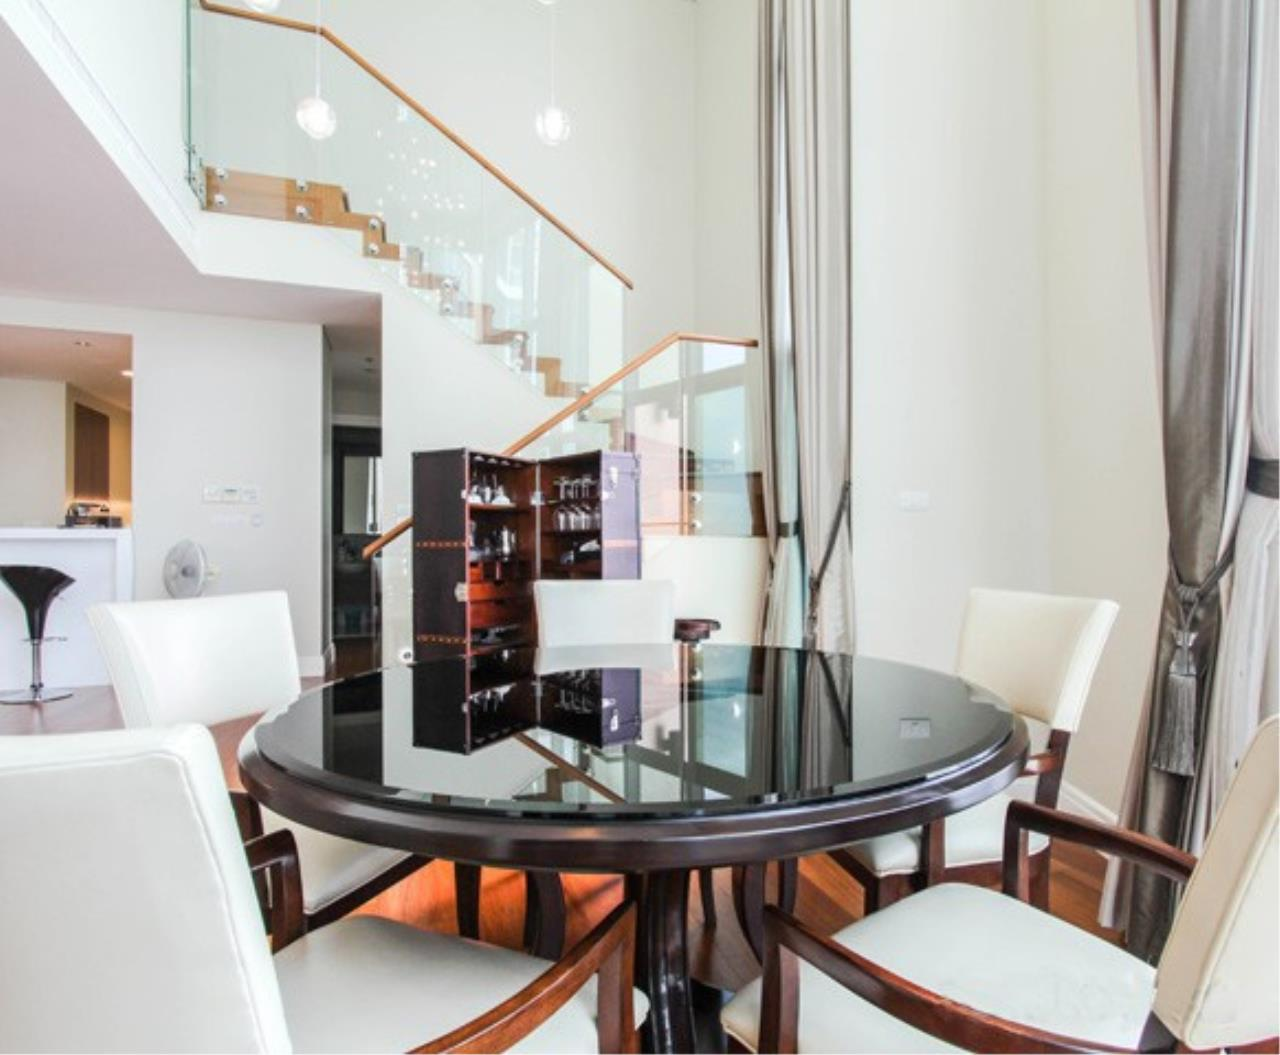 RE/MAX All Star Realty Agency's Bright 24 for sale/rent (BTS Phrom Phong) 7